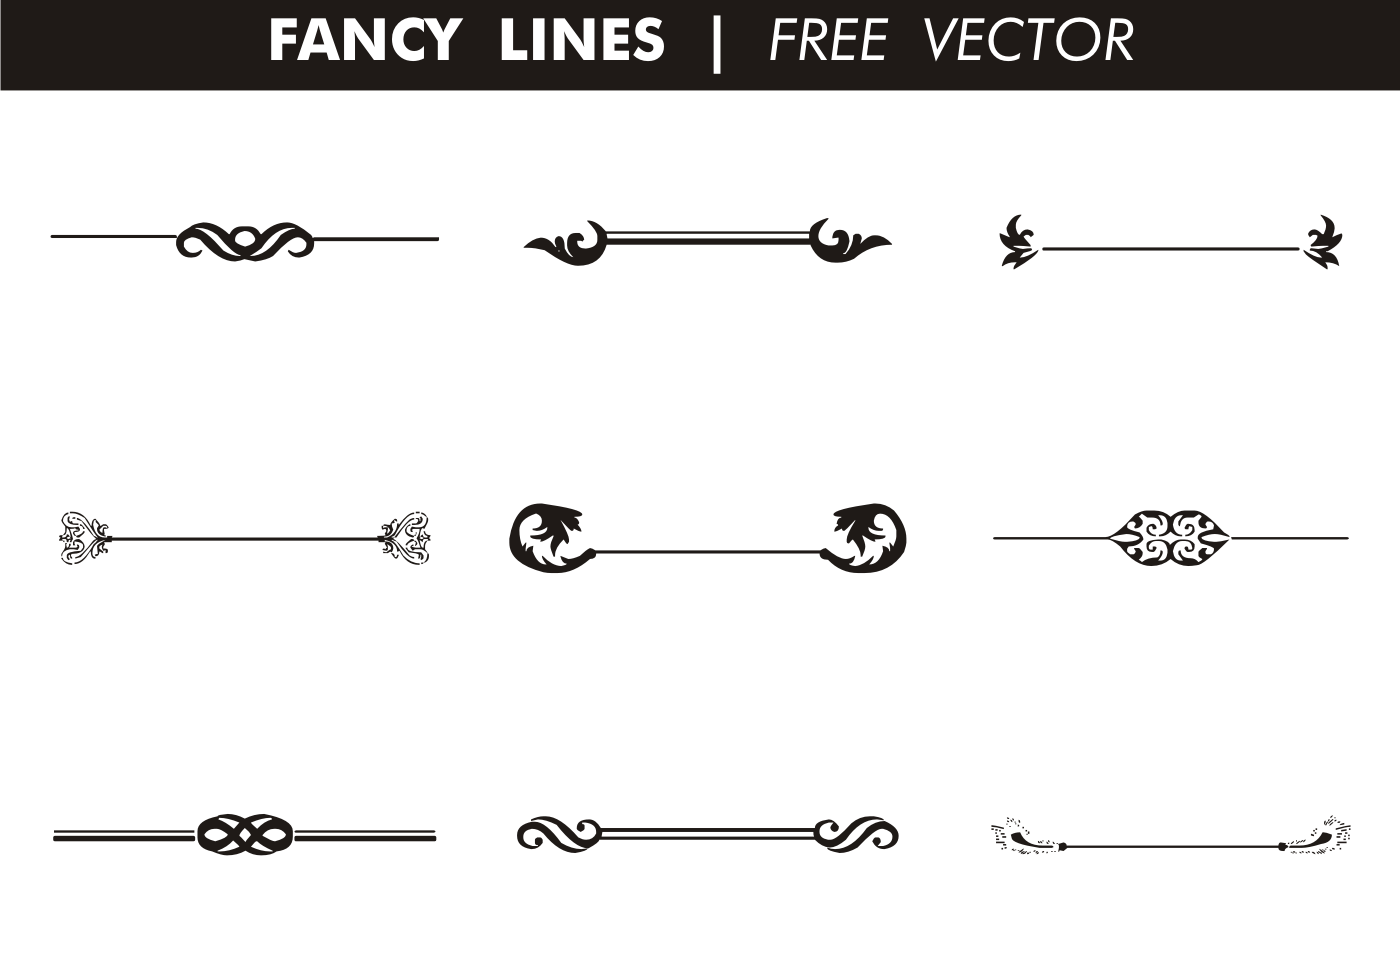 Line Drawing Vector Free : Decorative fancy lines free vector download